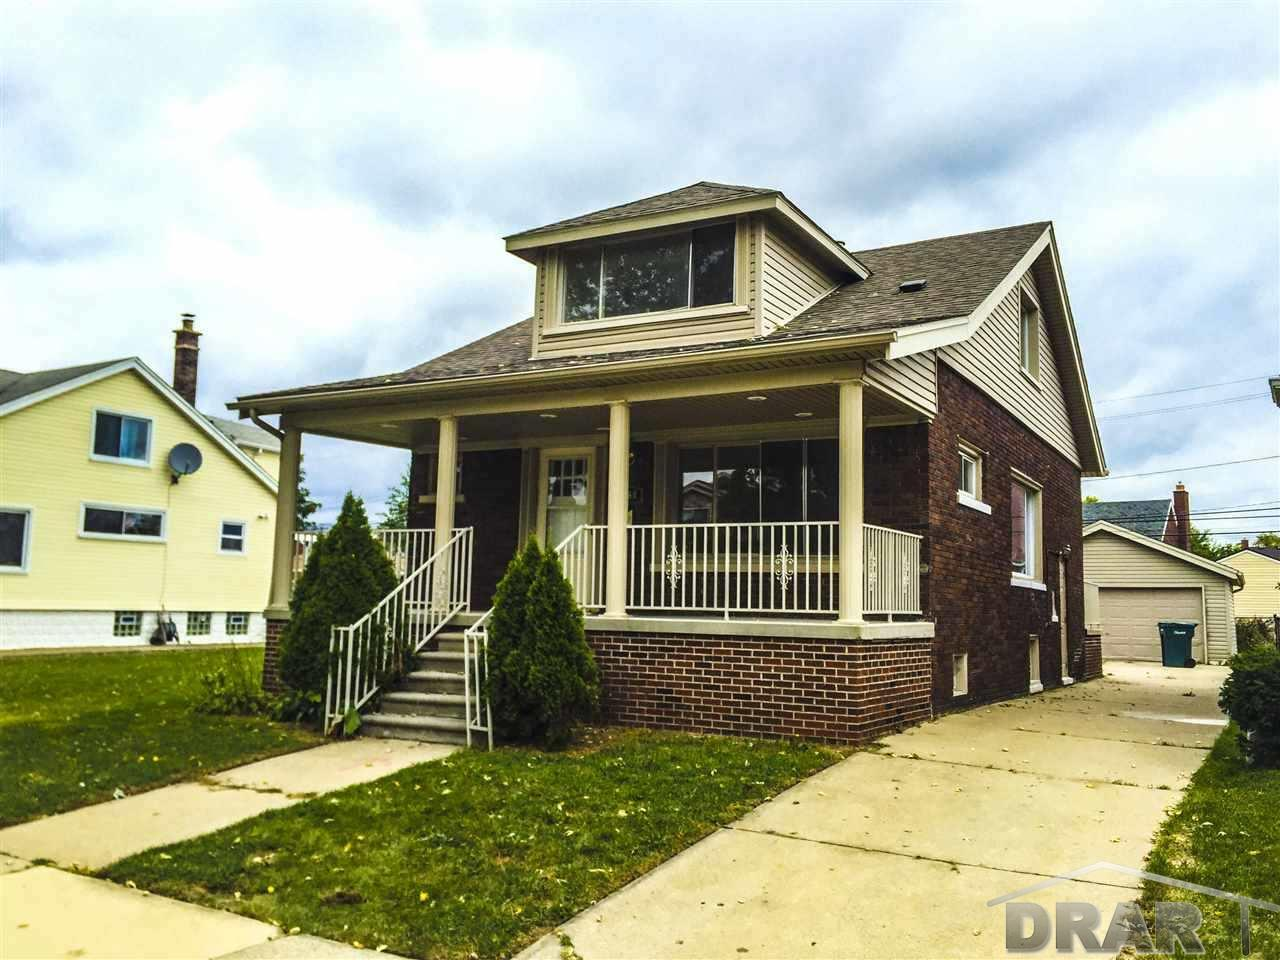 Rental Homes for Rent, ListingId:35889397, location: 4960 ORCHARD UNIT 2 Dearborn 48126